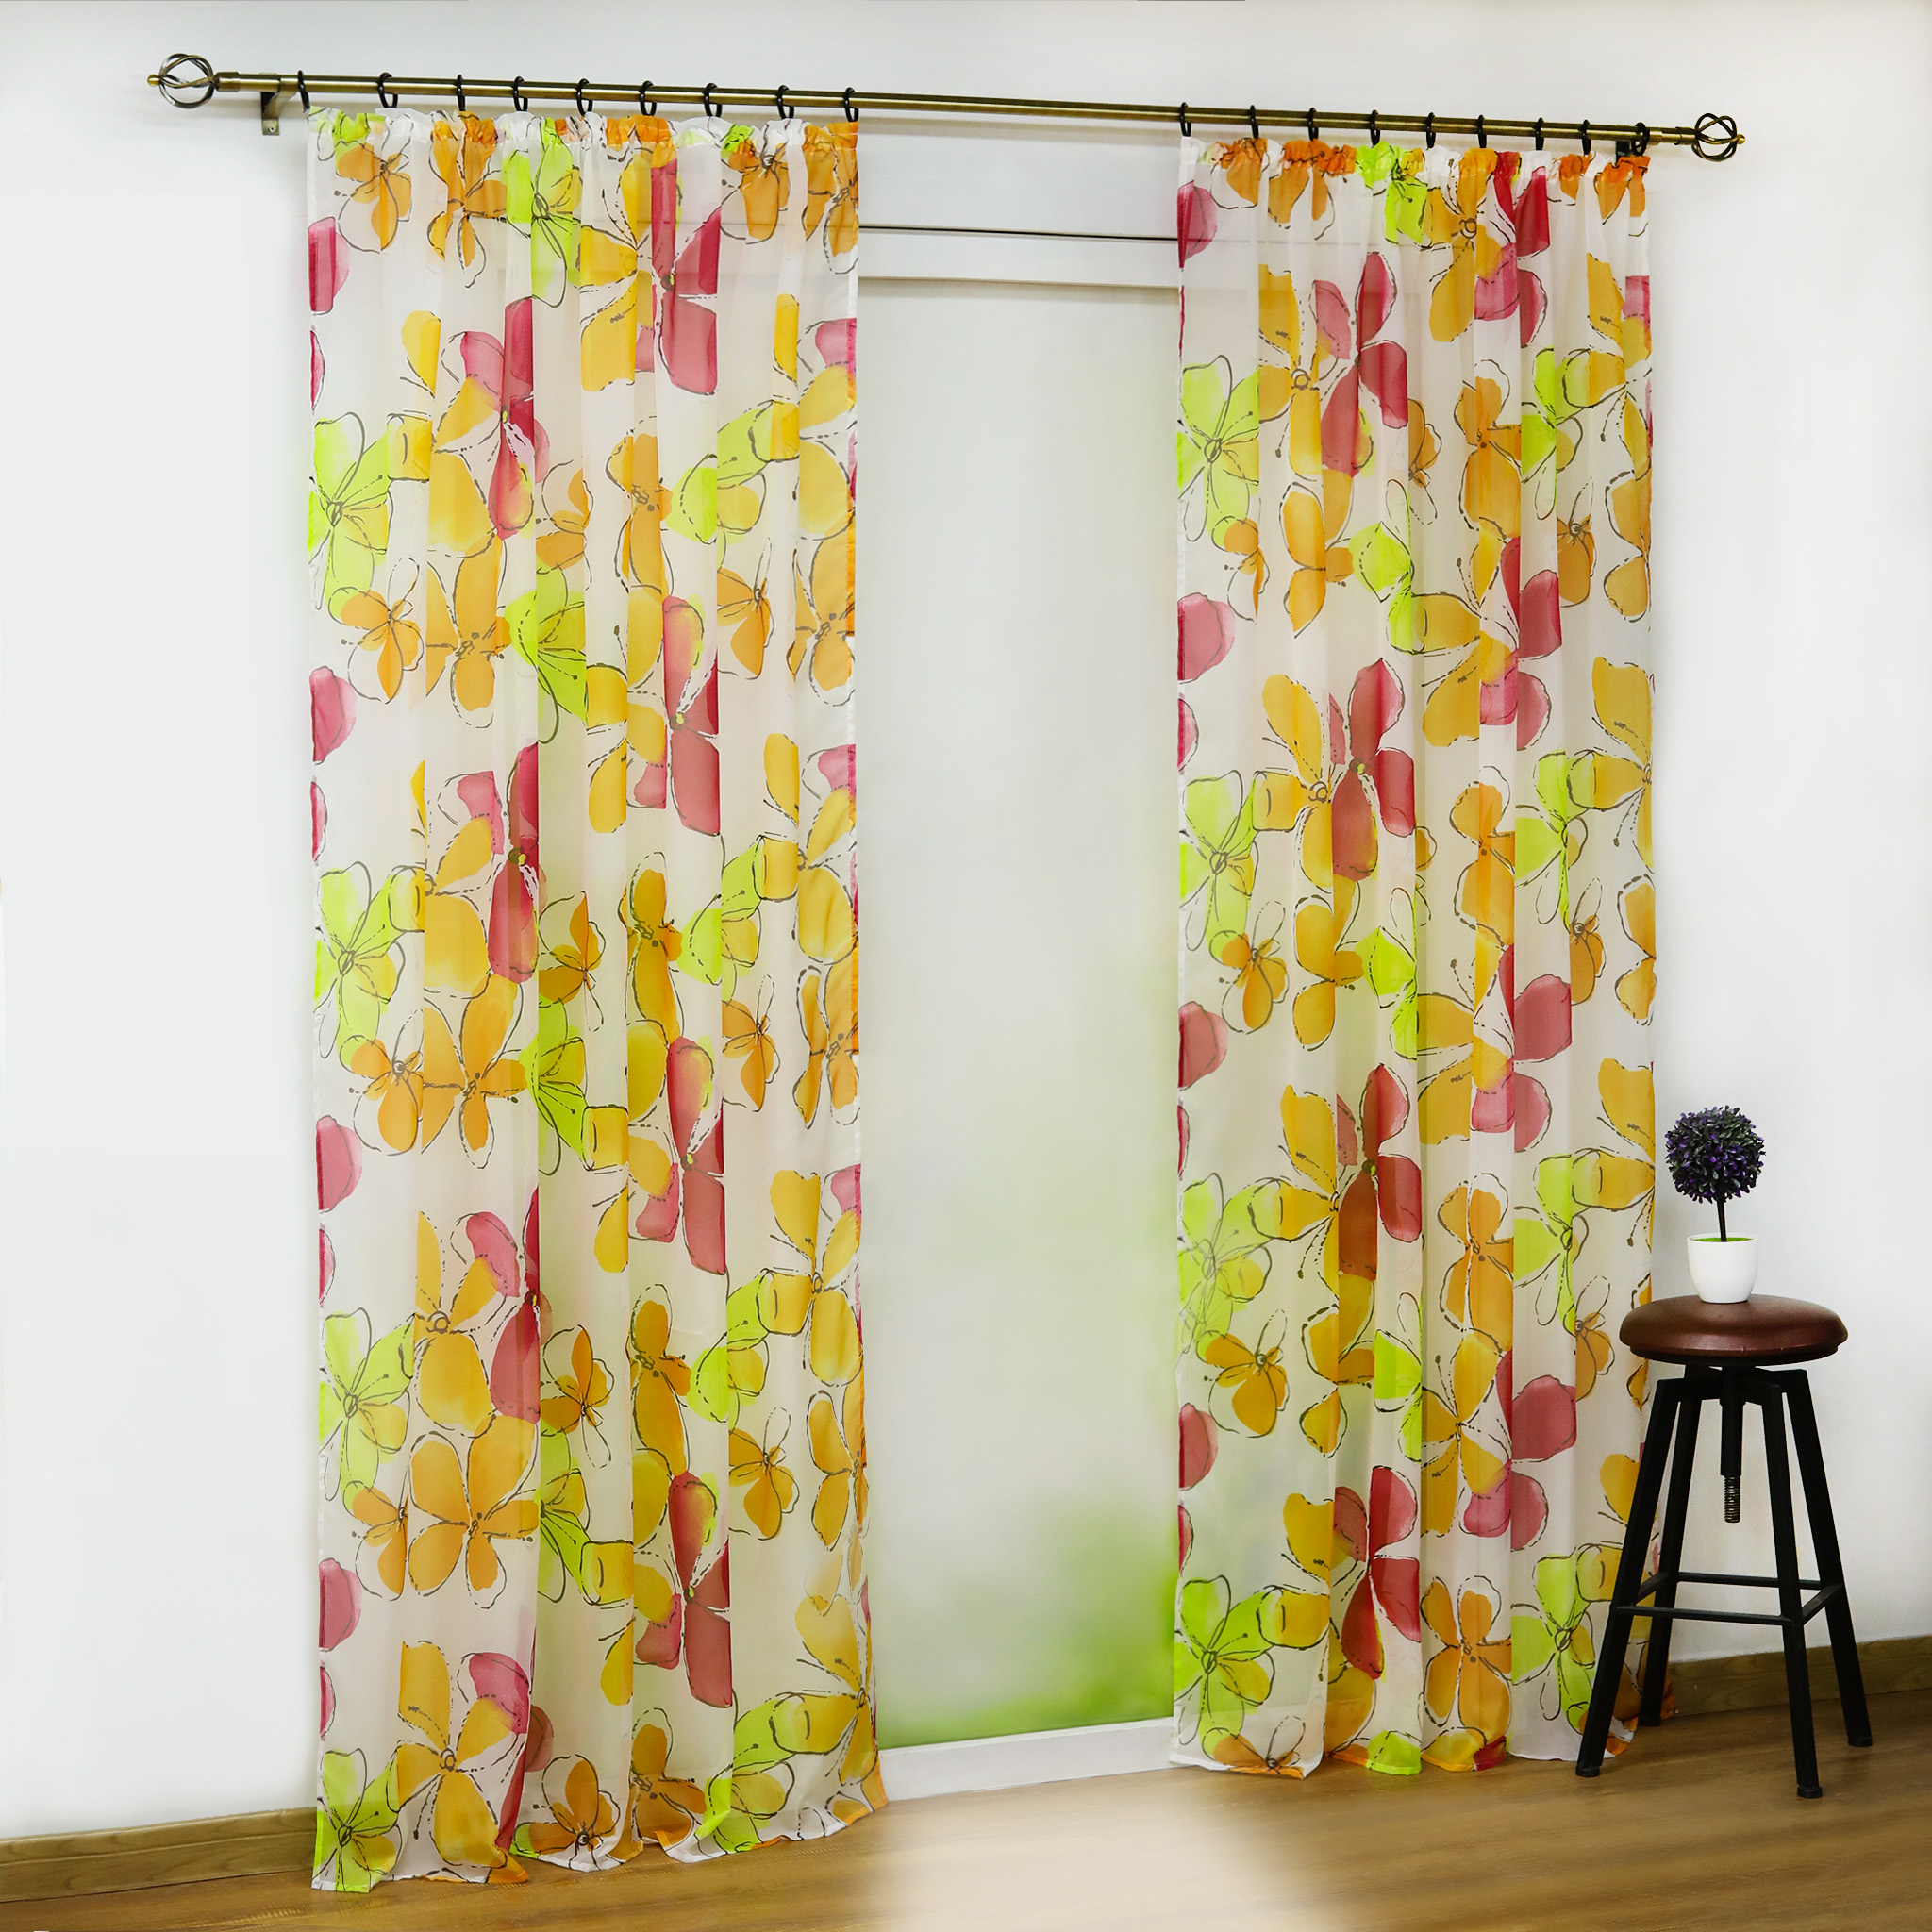 Eyelet Floral Sheer Voile Curtain Tab Top Pull Pleated Type Transparent Curtain Drapes Living Room Kitchen Window Treatment 1PCS